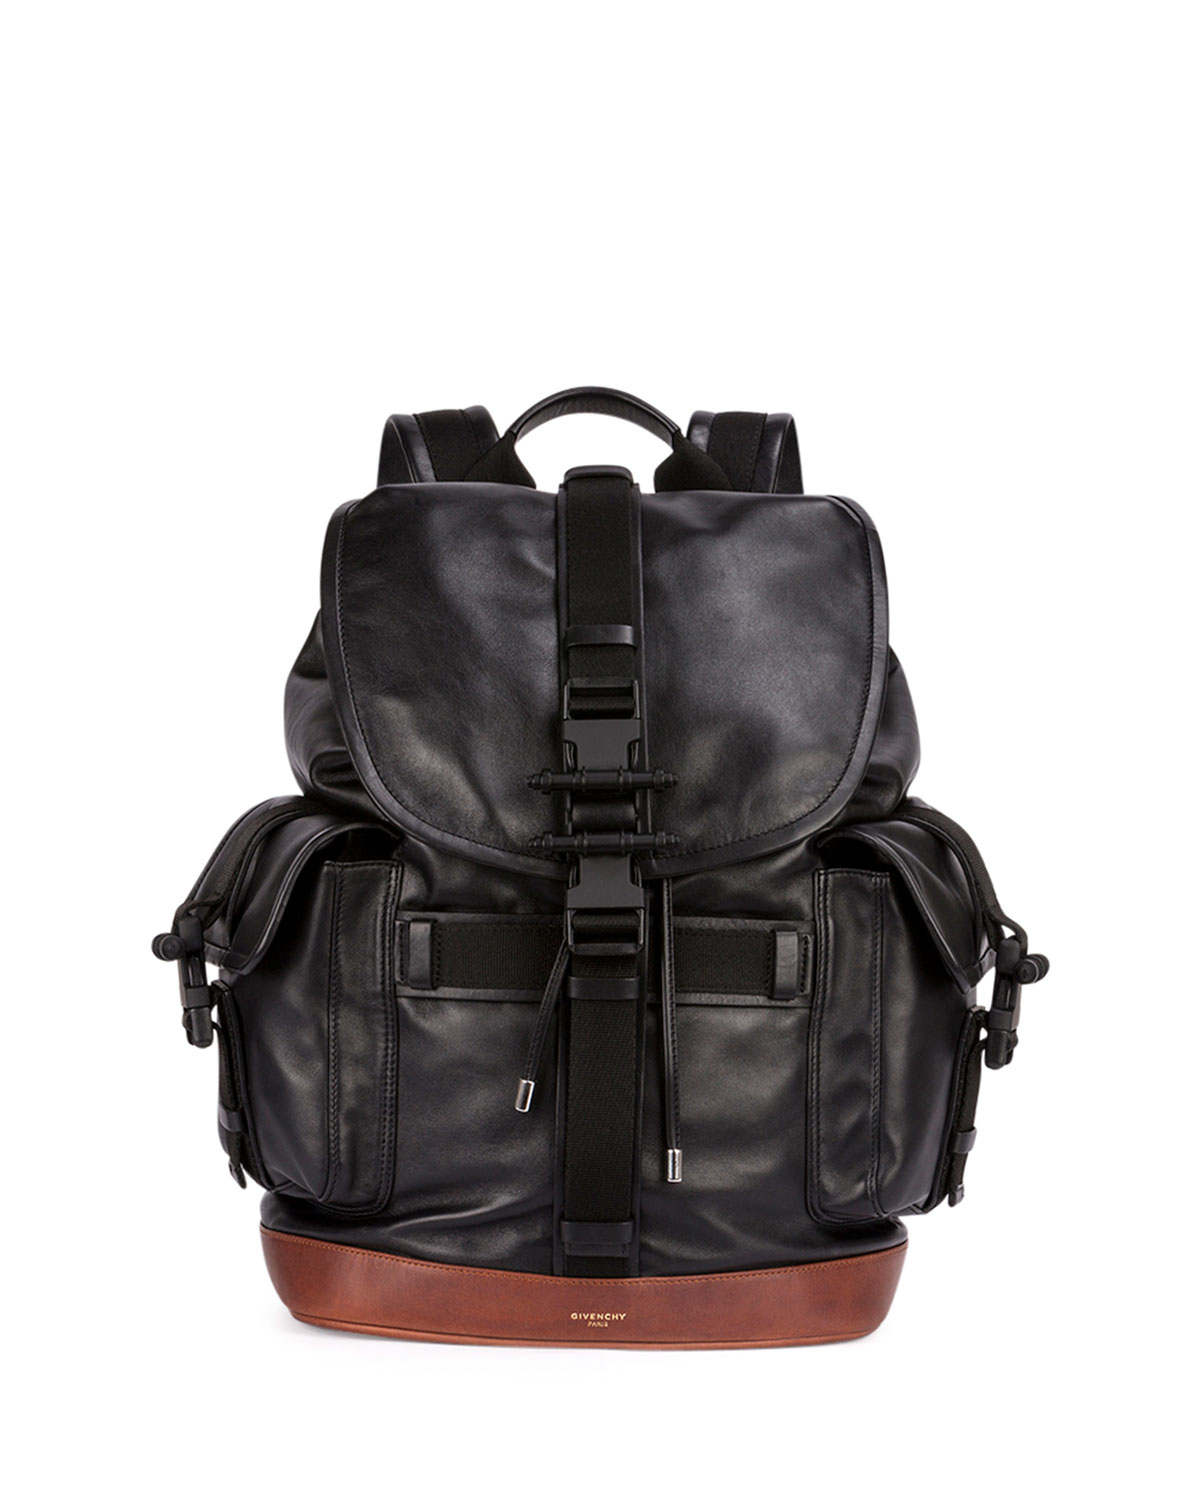 Givenchy Obsedia Men's Leather Flap Backpack in Black for Men | Lyst